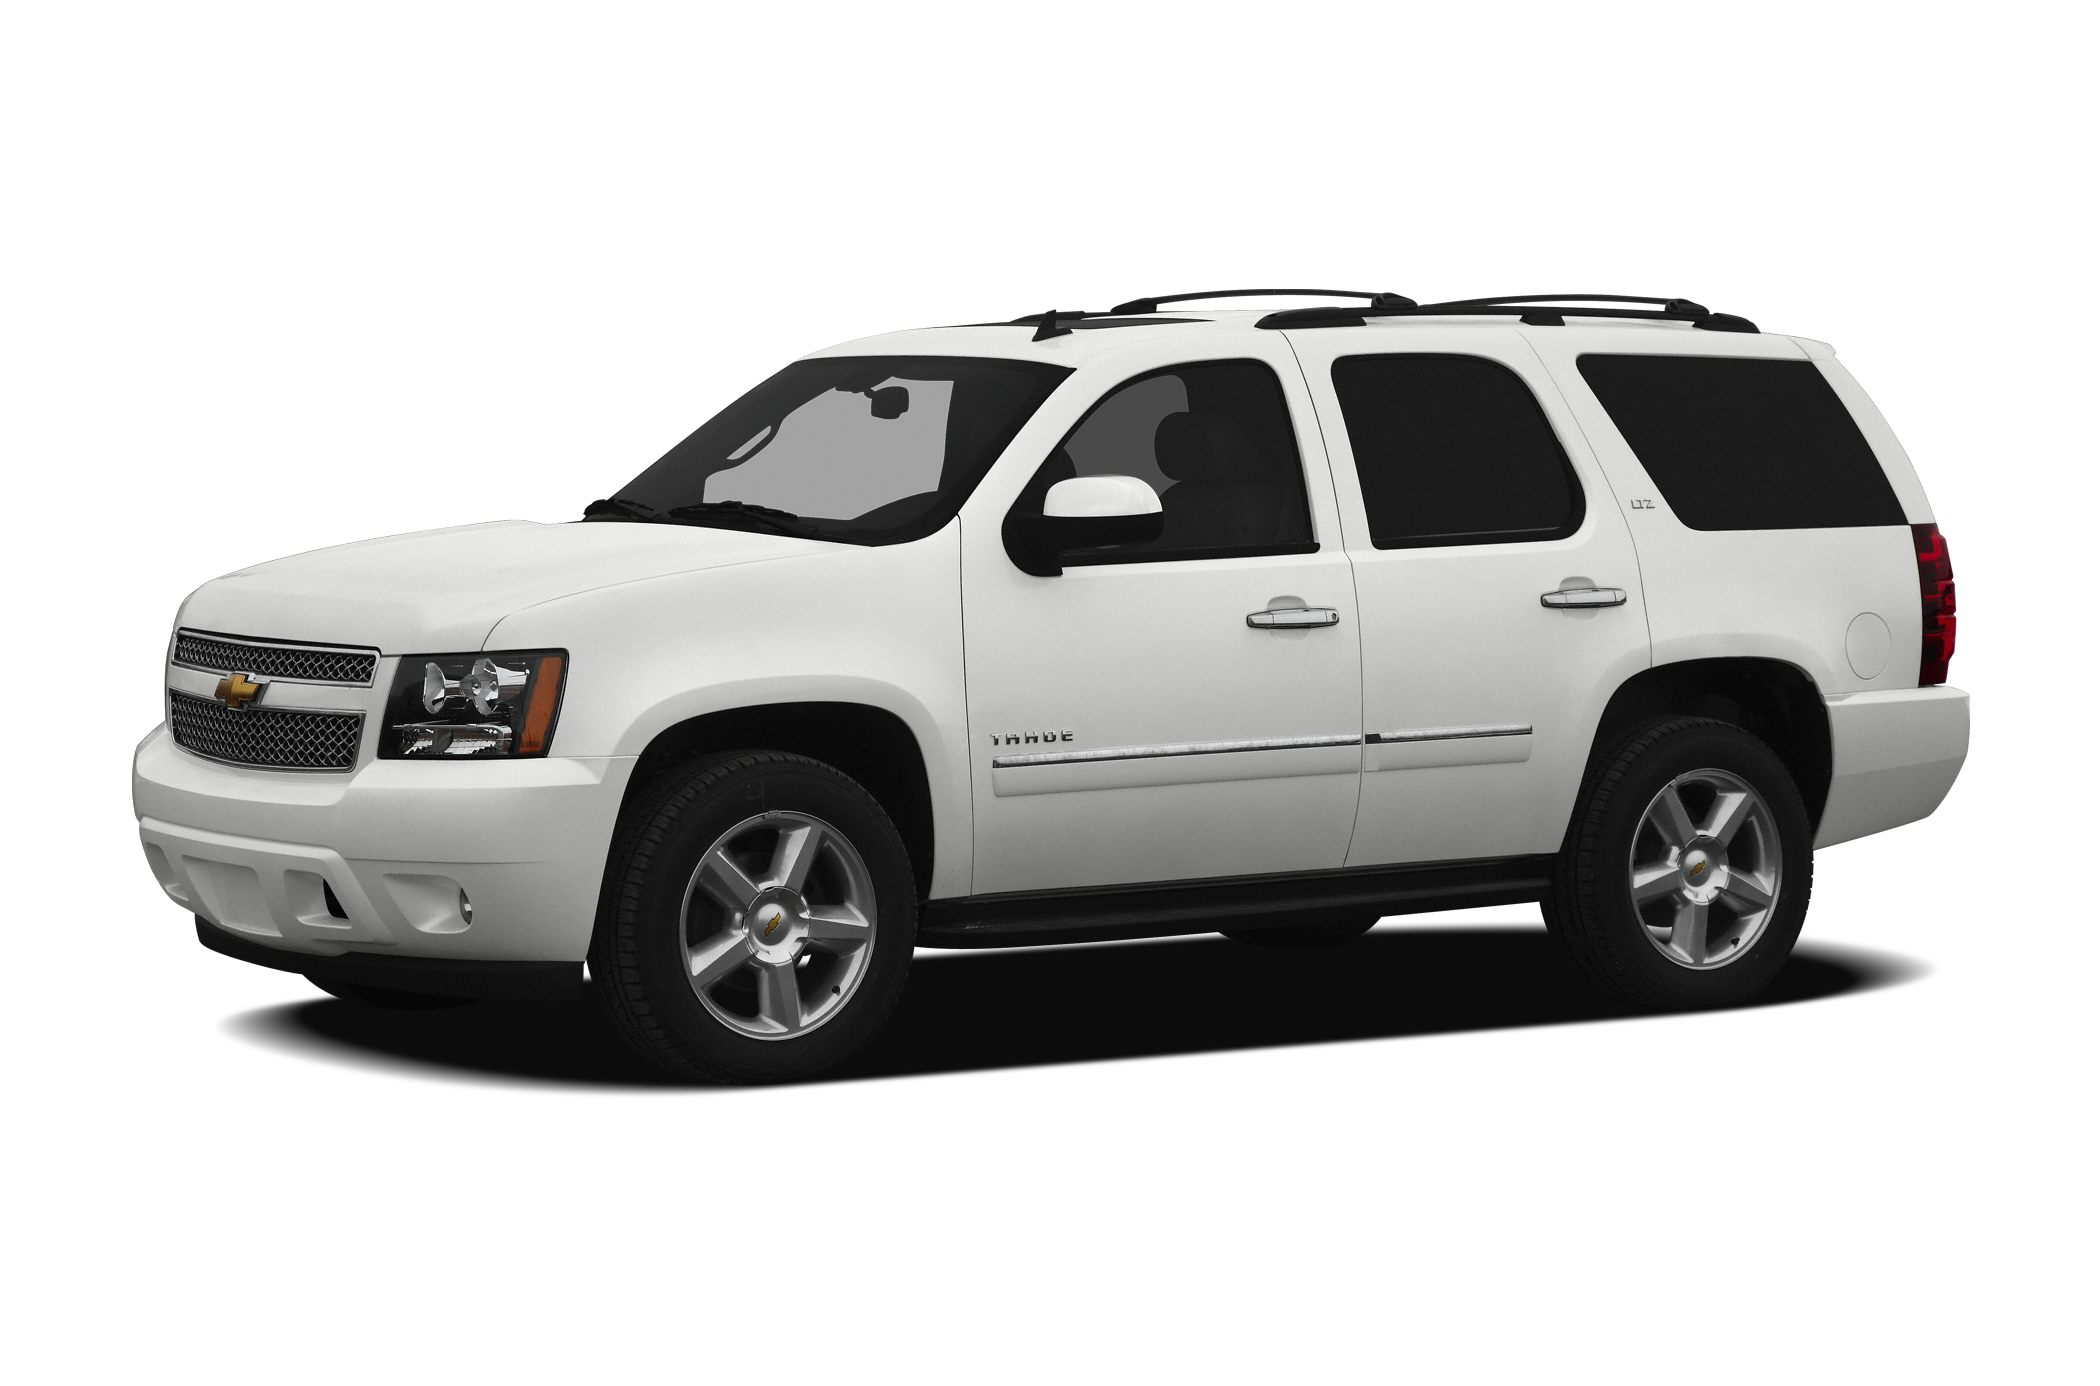 2008 Chevrolet Tahoe LS SUV for sale in Greer for $24,900 with 97,001 miles.